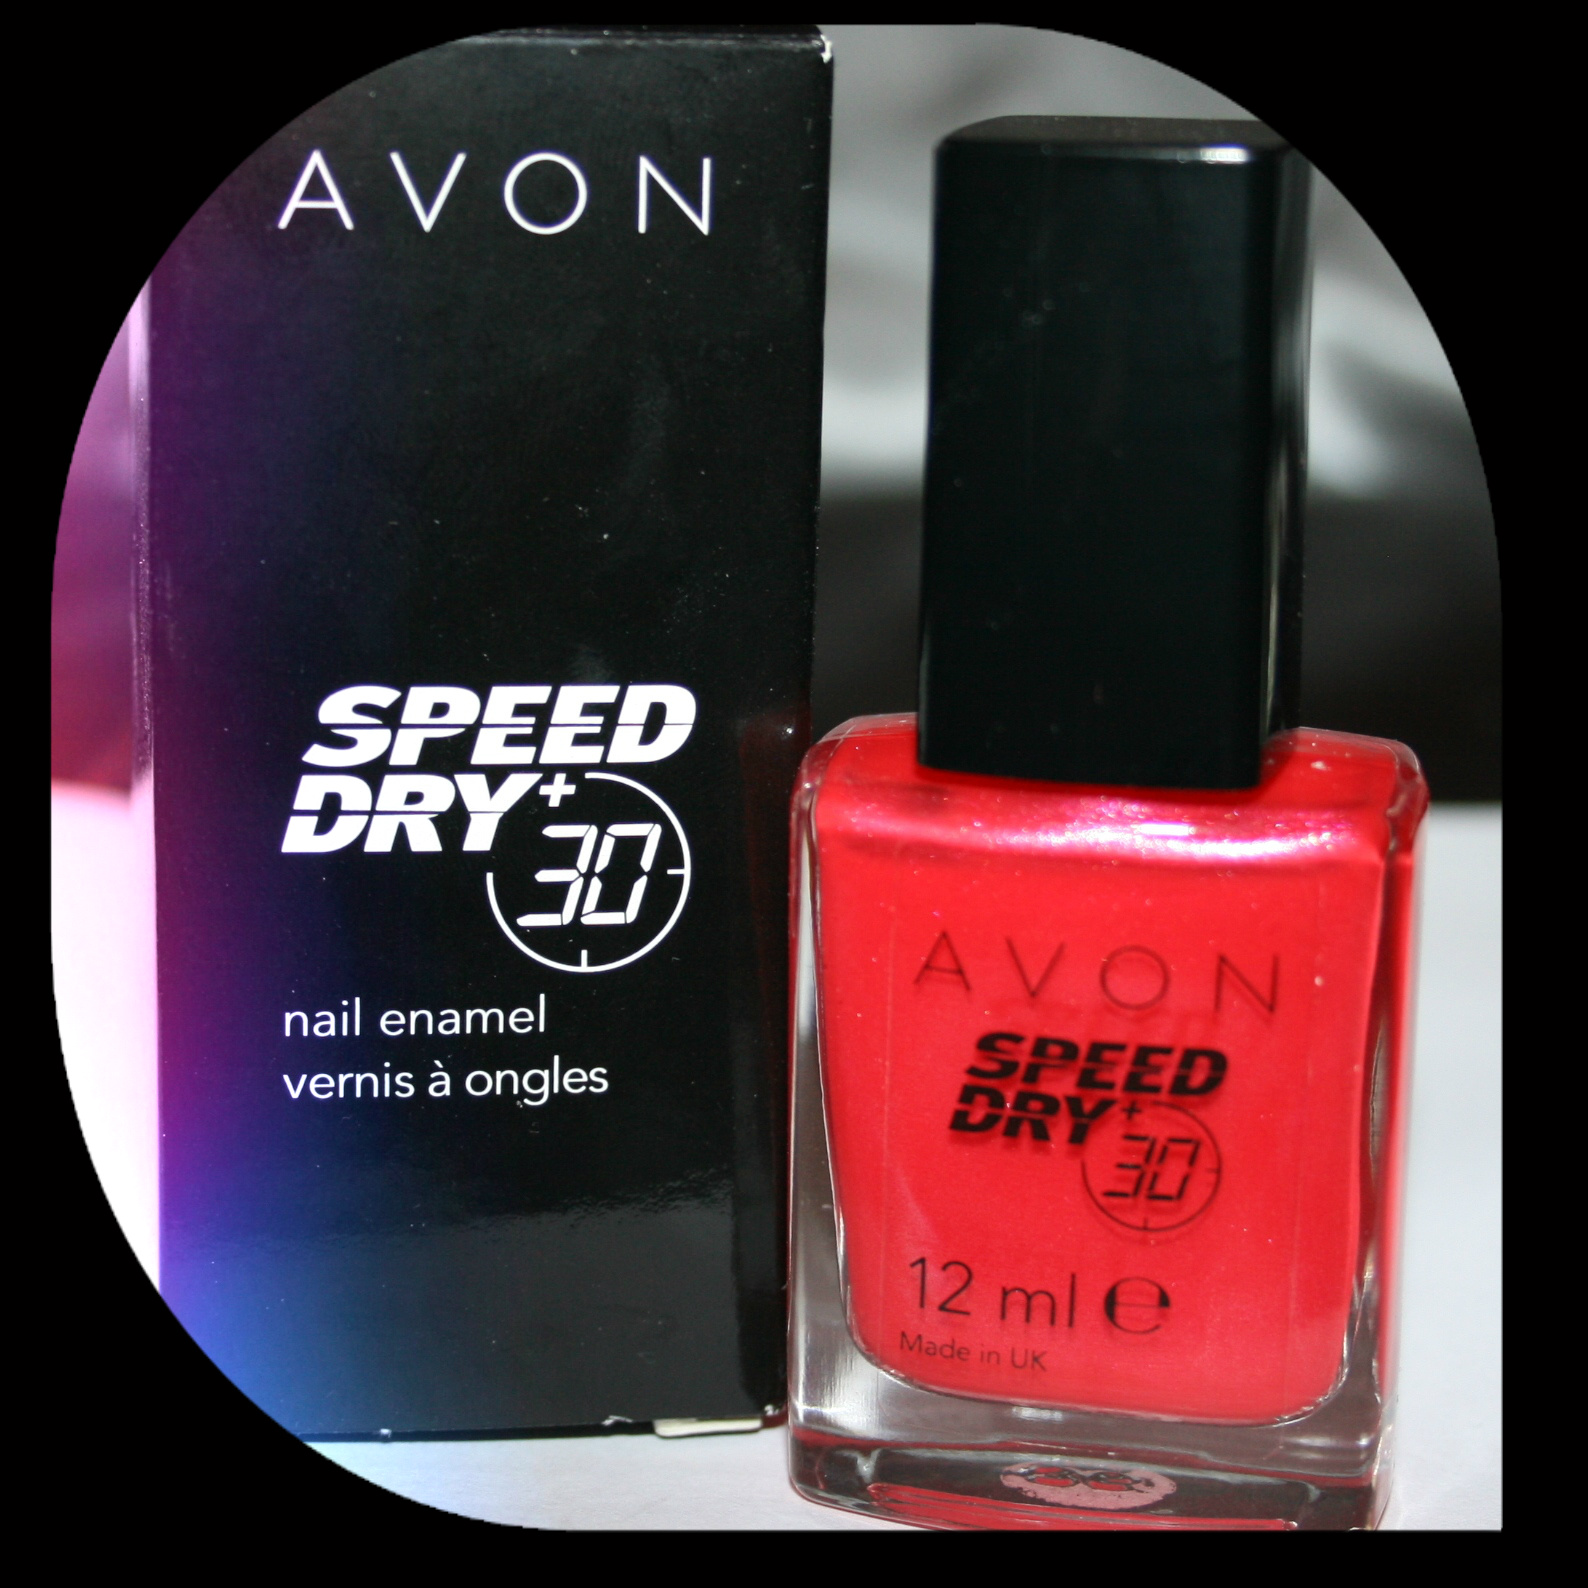 Speed dry nail polish